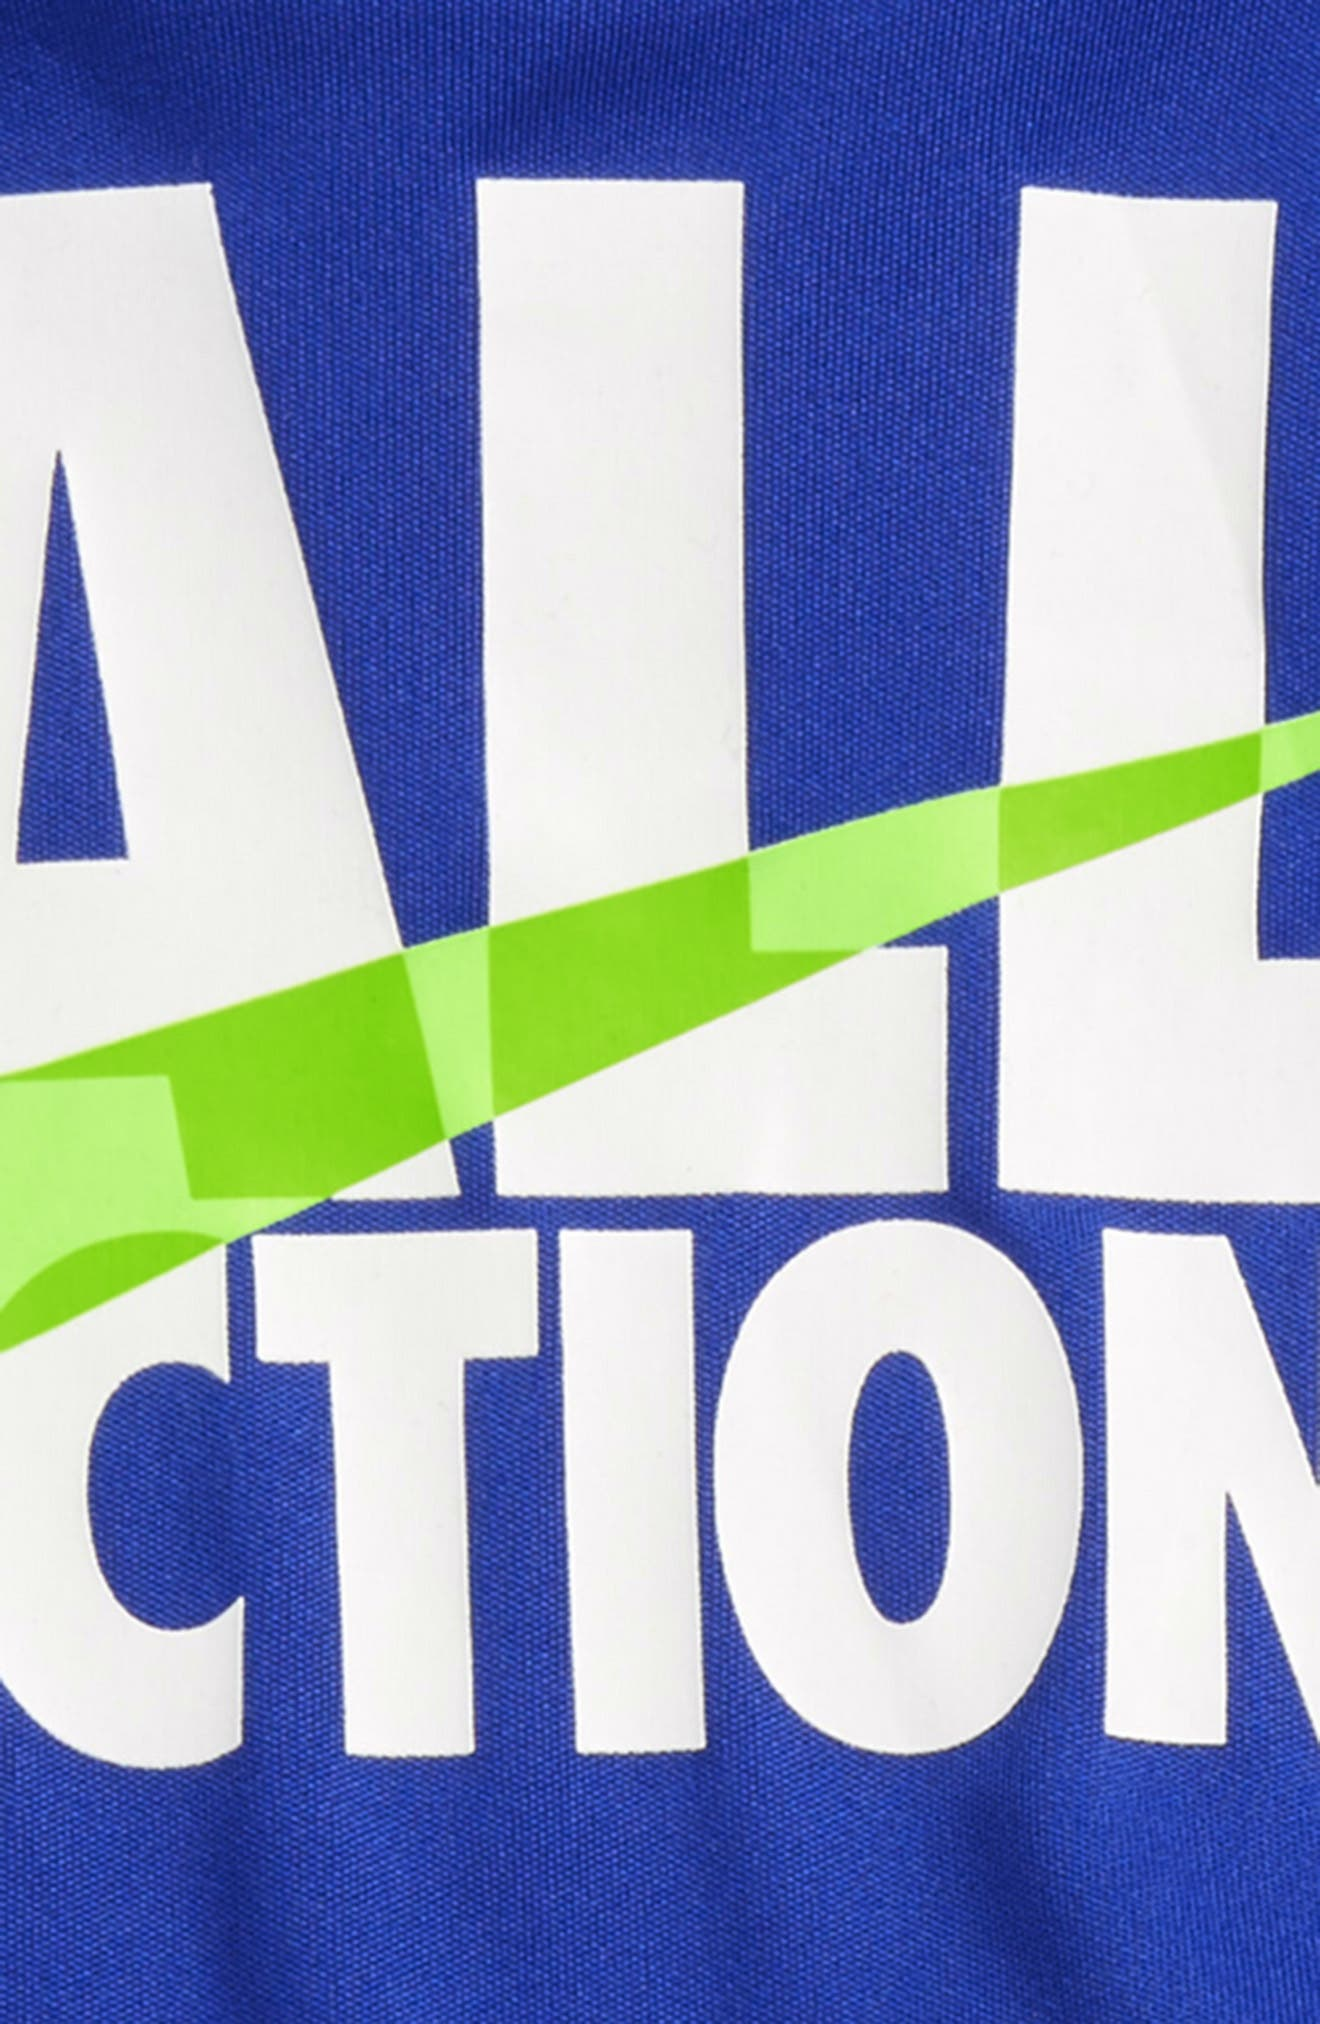 All Action Dry T-Shirt & Shorts Set,                             Alternate thumbnail 2, color,                             434